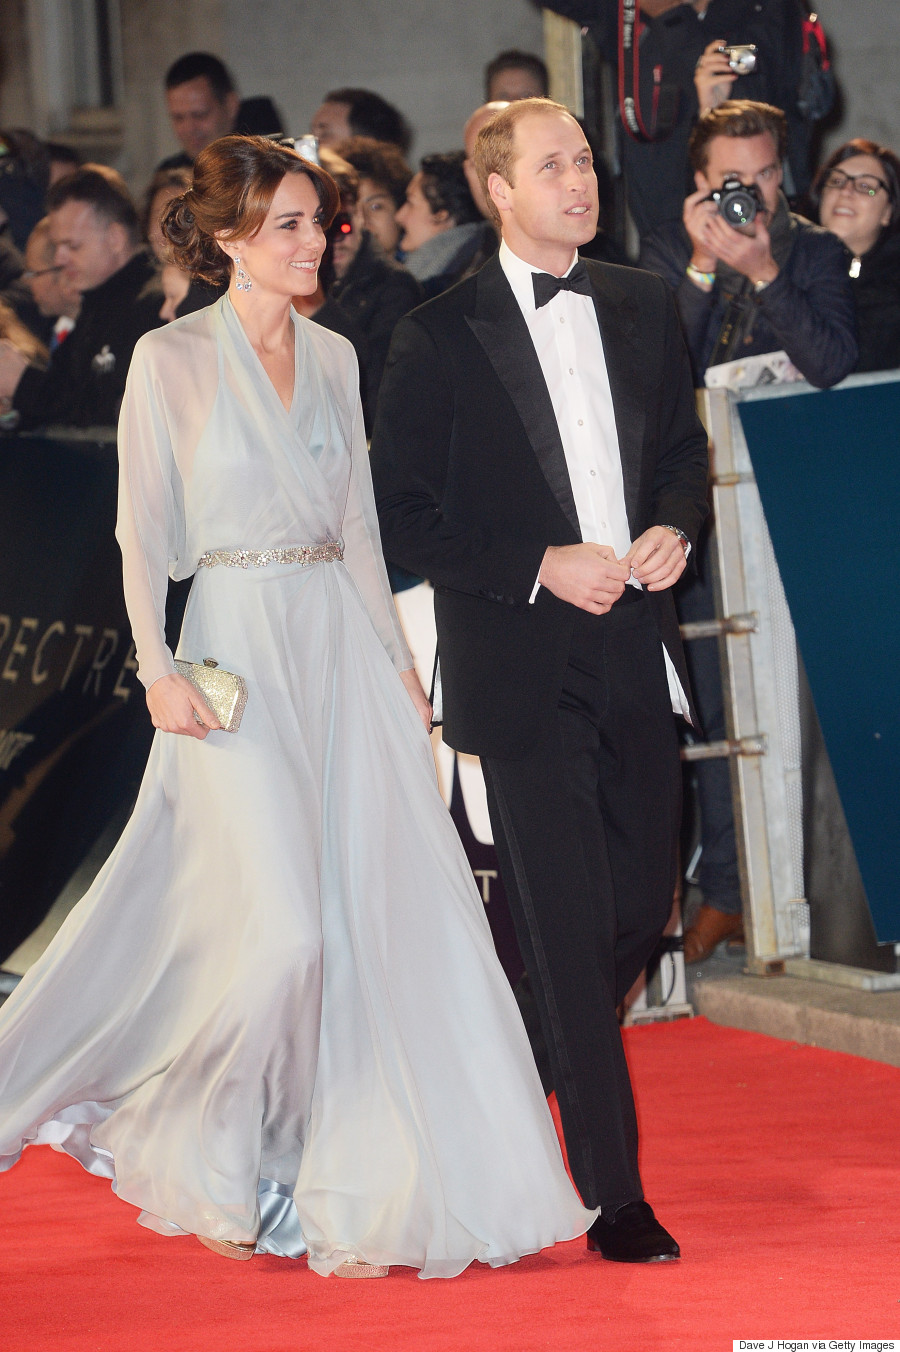 Kate Middleton Stuns In Blue Gown At James Bond \'Spectre\' Premiere ...